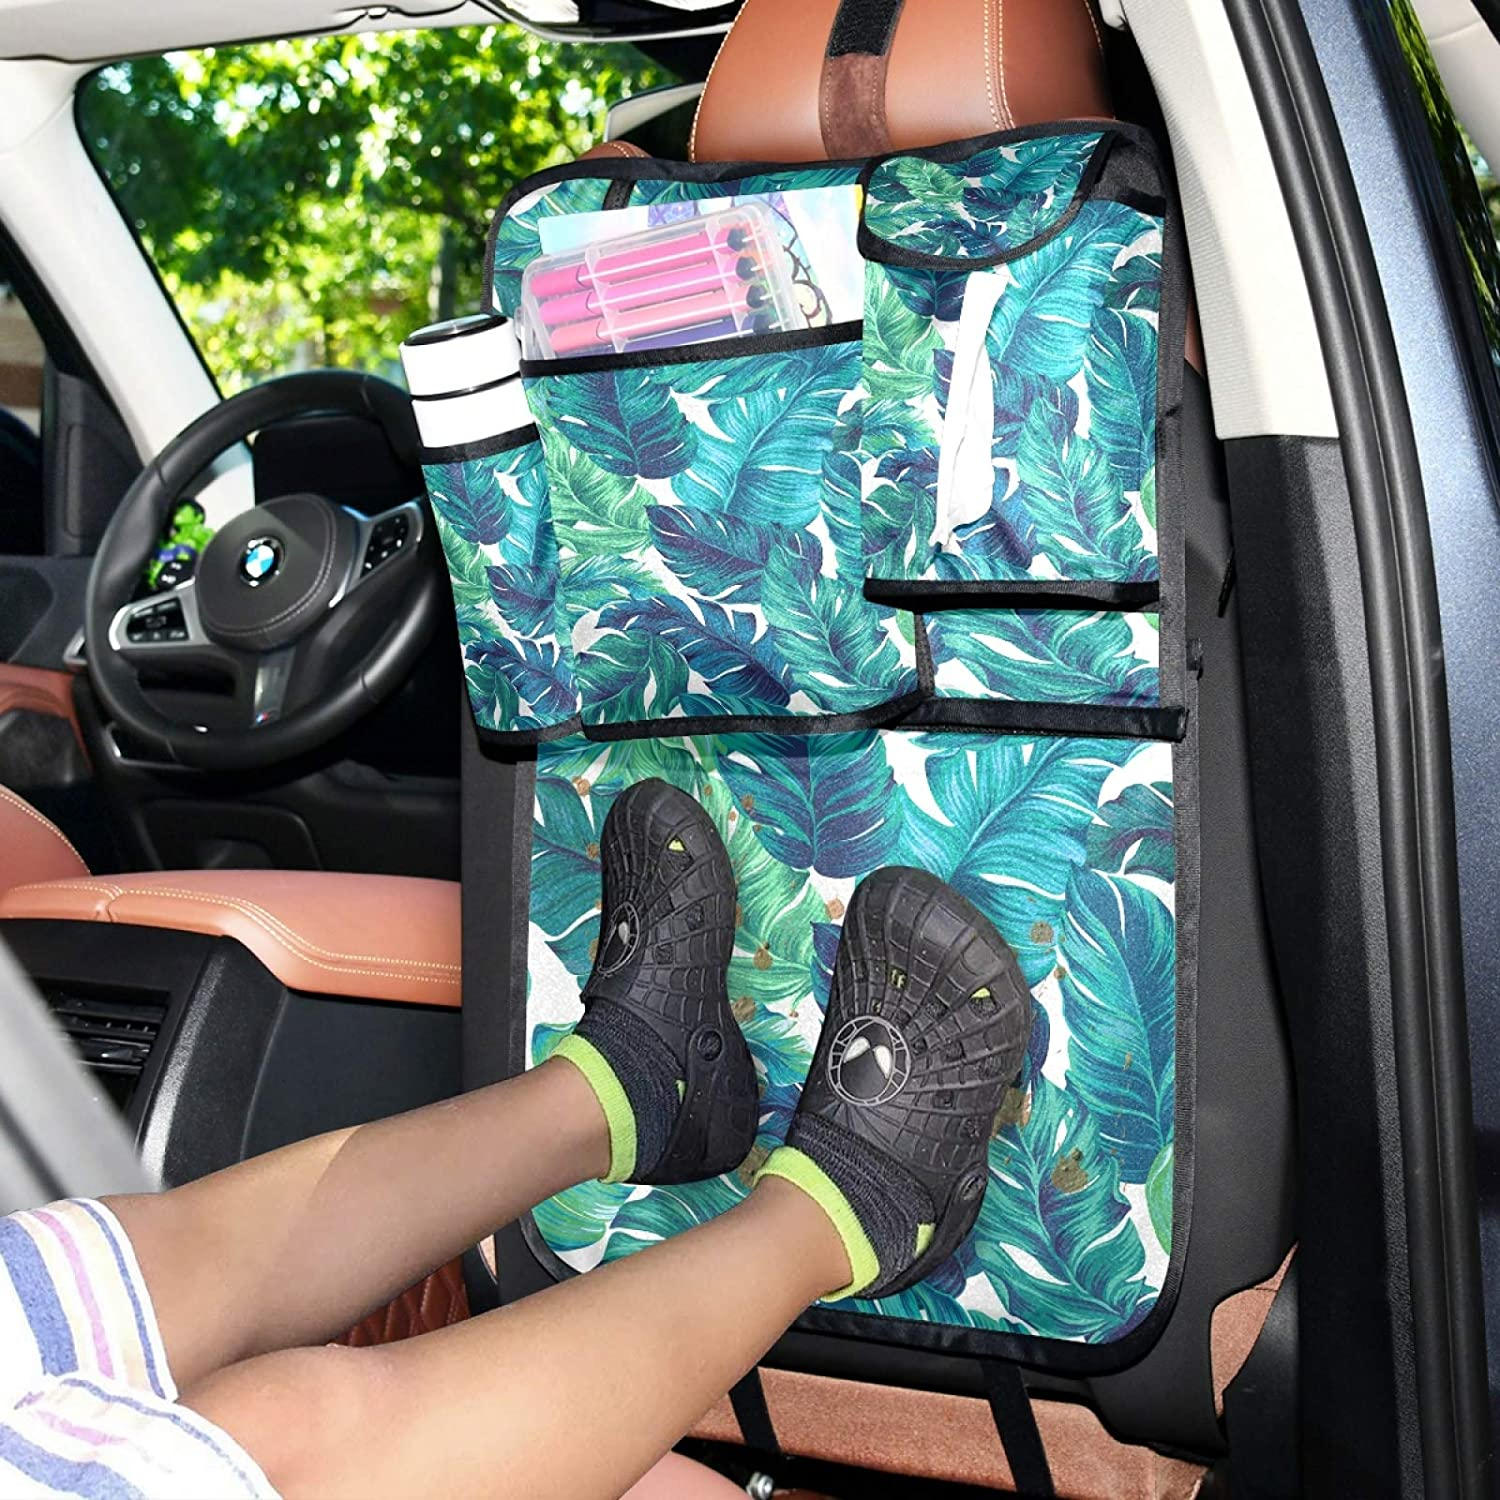 WELLDAY Car Backseat Organizer Blue Green Palm Leaves Trunk Storage Travel Accessories Pockets Kick Mats Protector for Kids Toddlers 1PCS